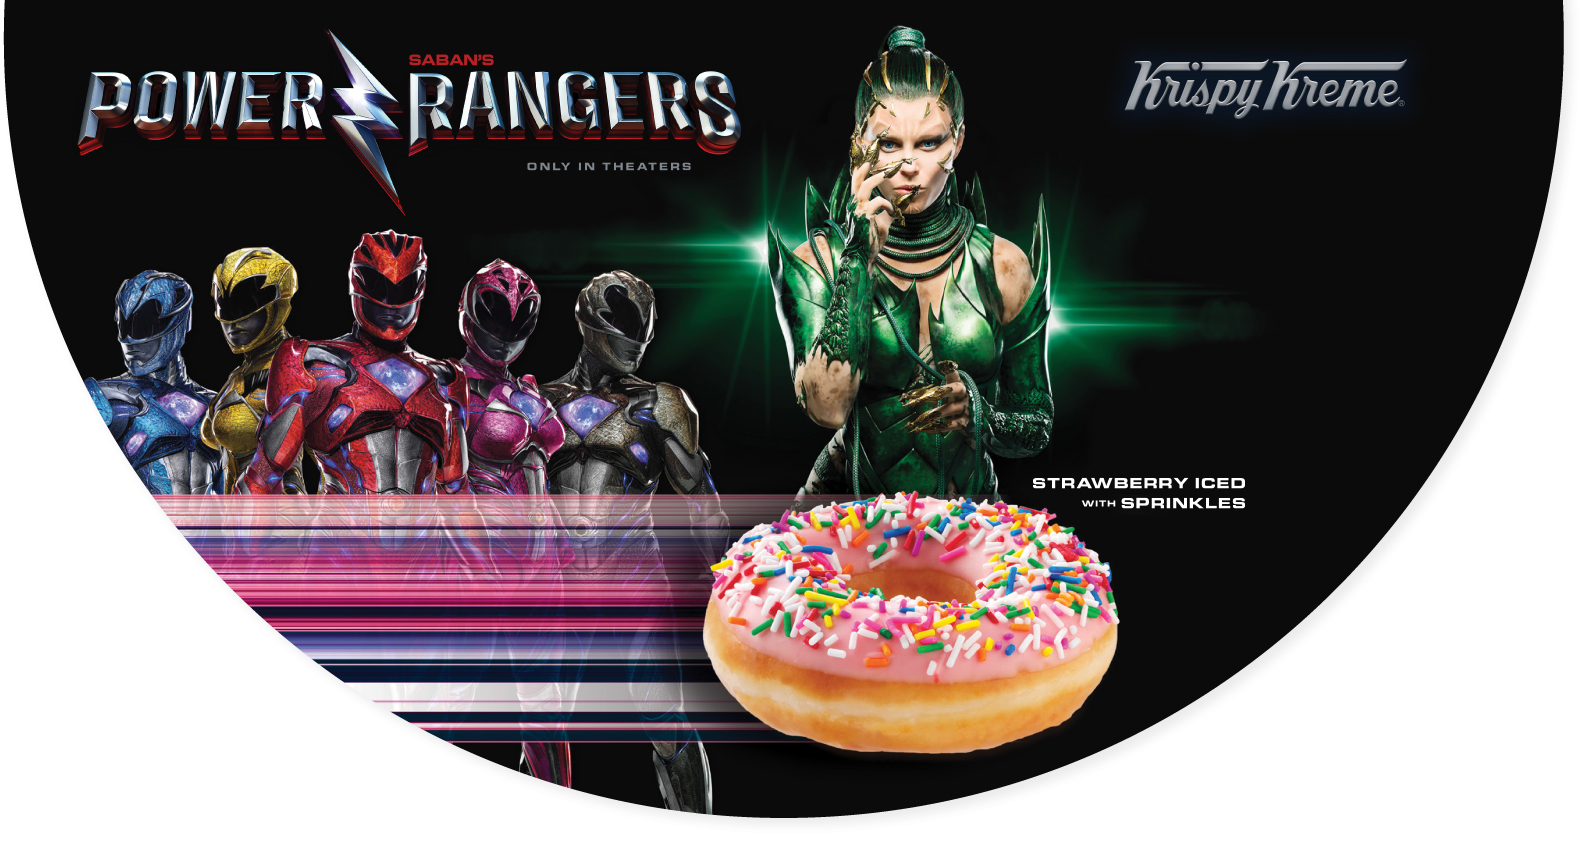 krispykreme_website_powerrangers